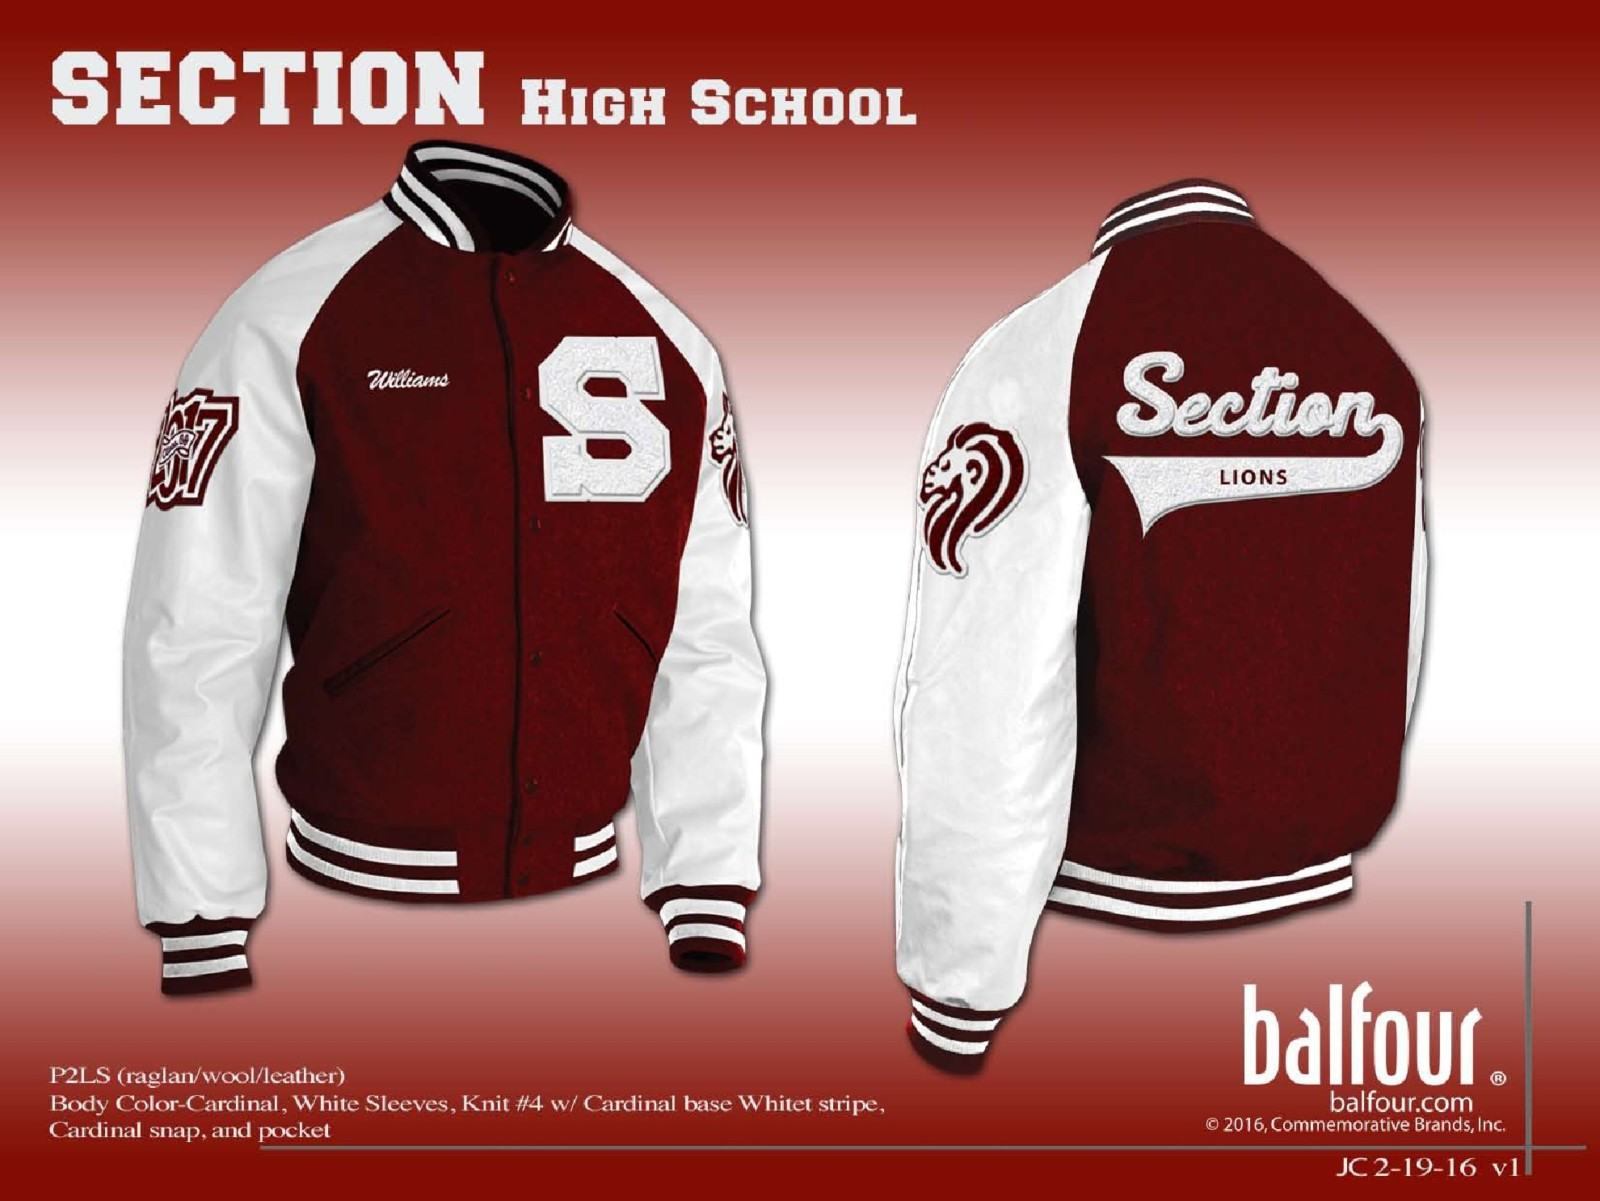 High School Letter Jackets for Athletes, Bands and Club | Balfour ...